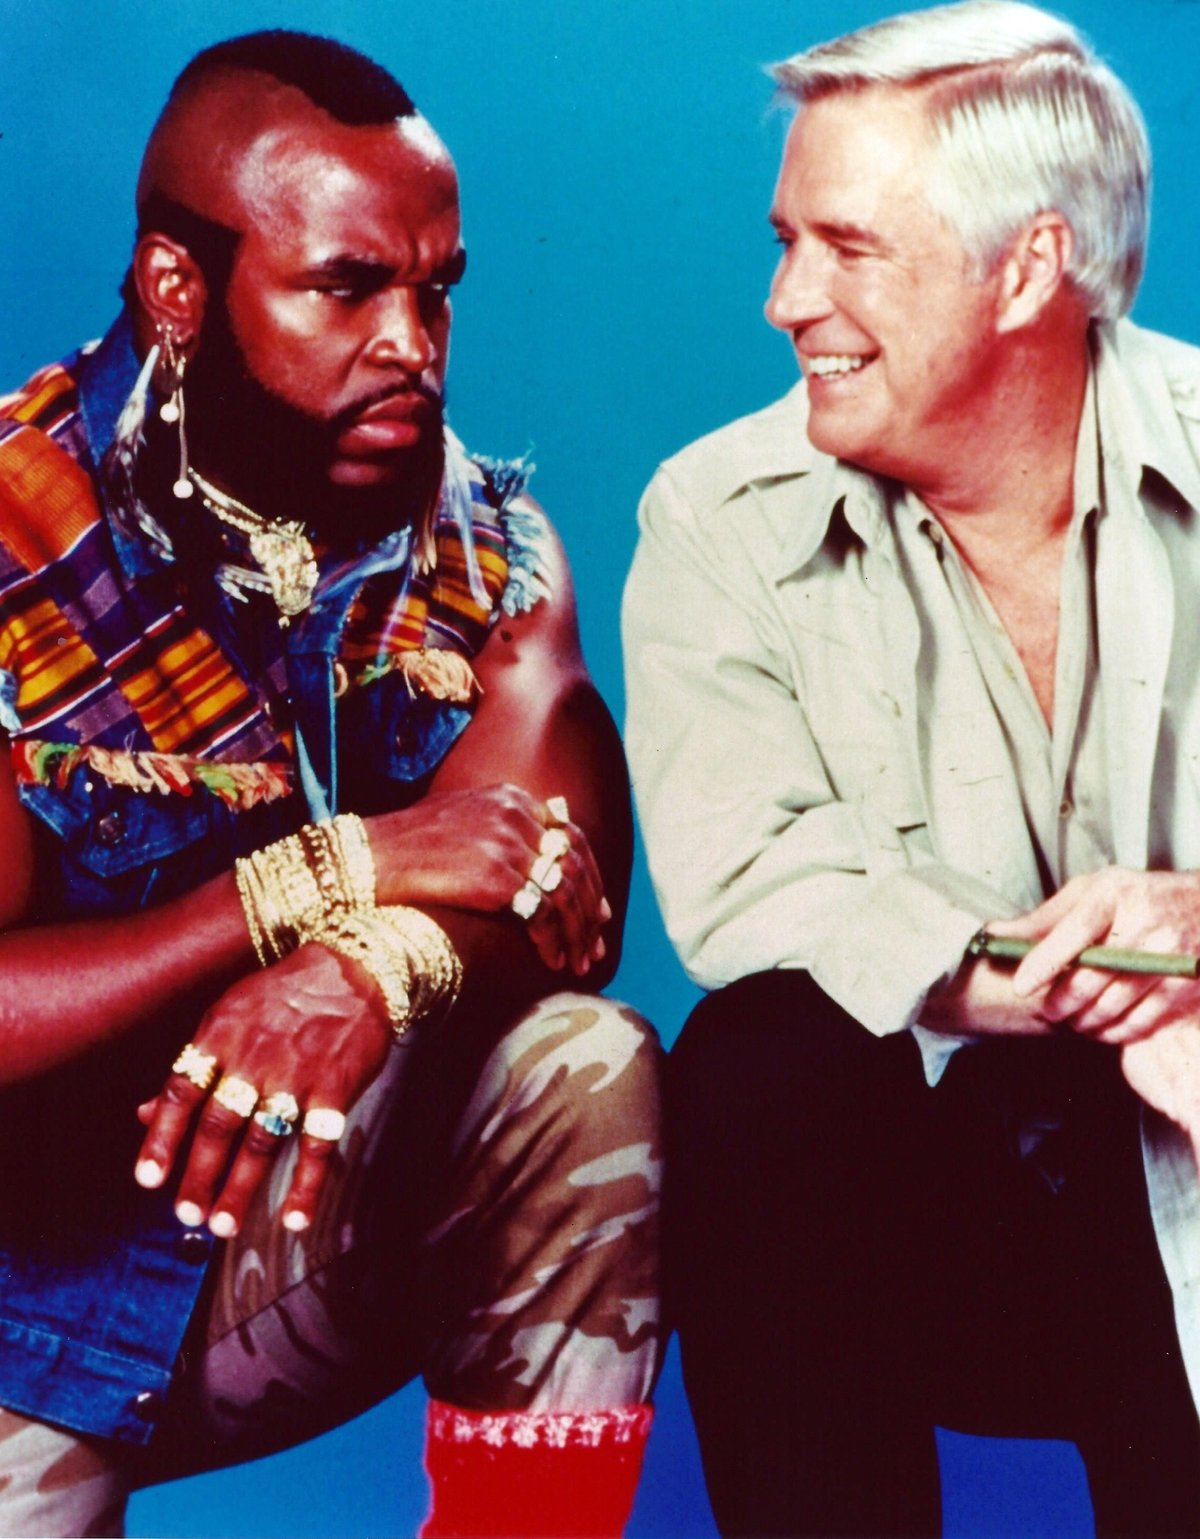 4 34 10 Things You Probably Didn't Know About Mr. T